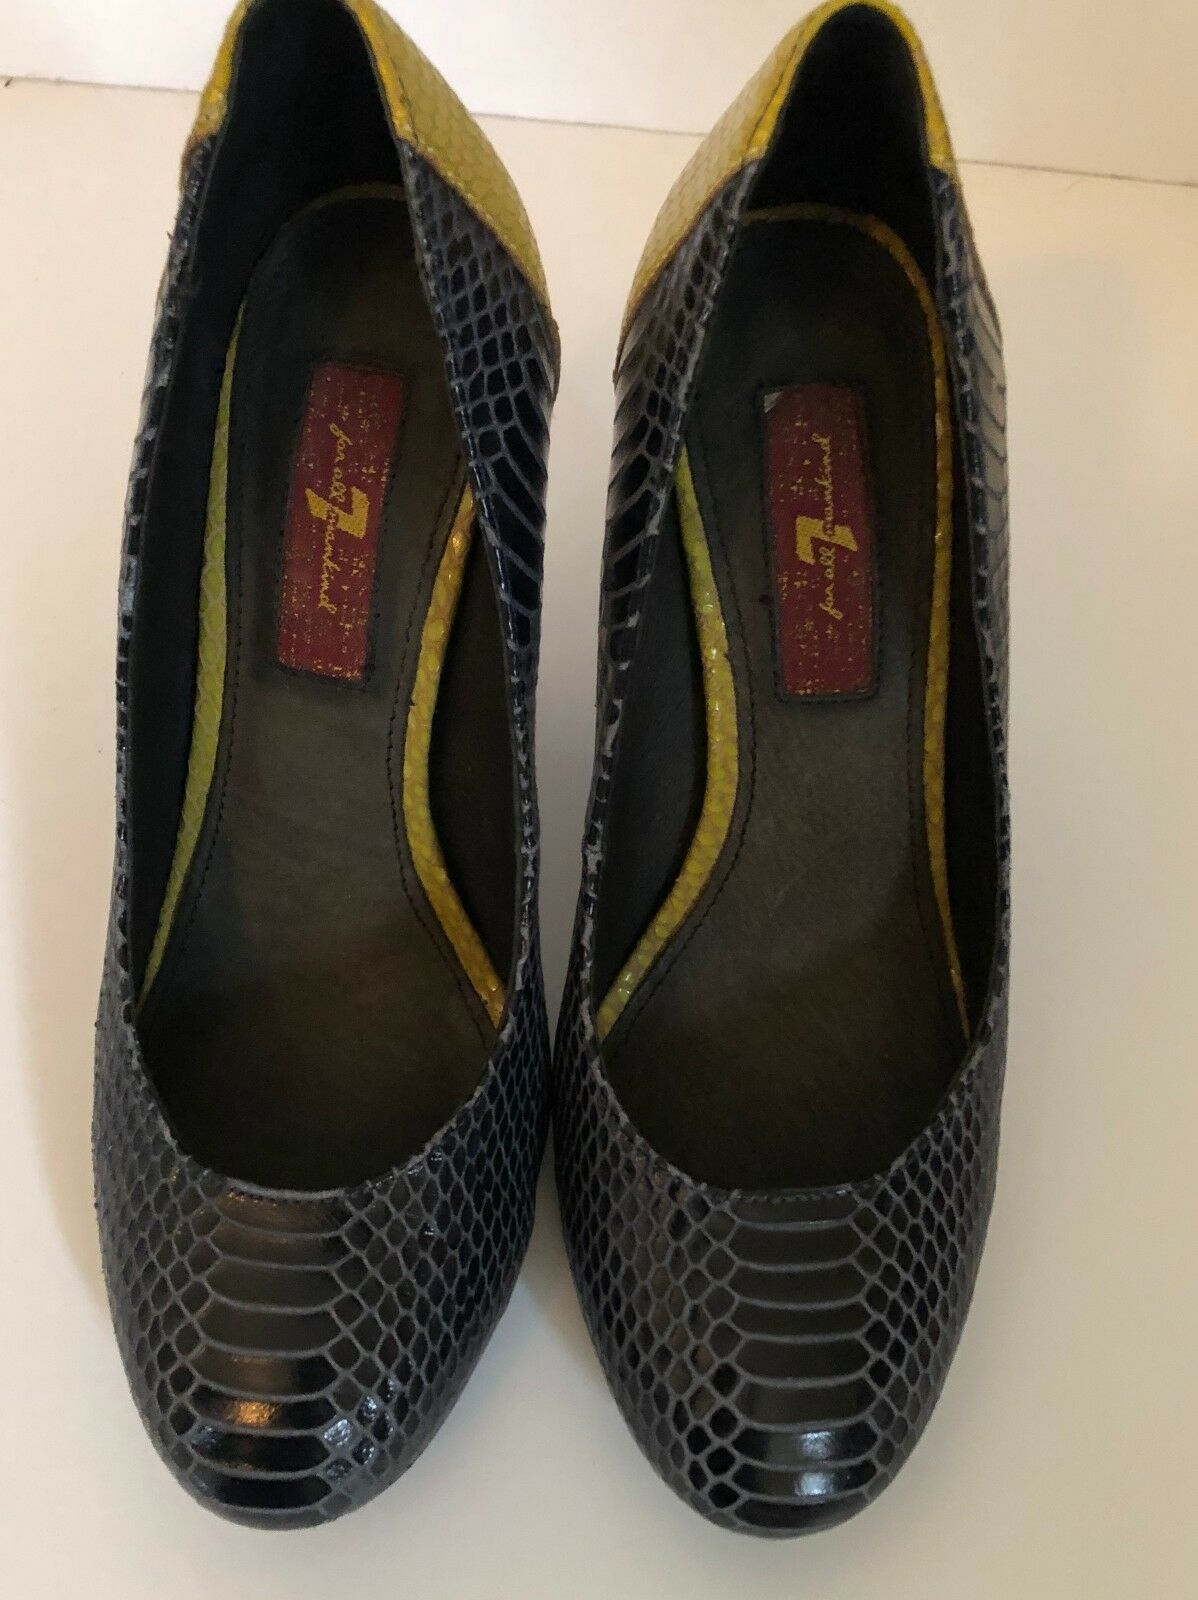 7 For All Mankind   Women's blueee & Acid Green Pumps Sz  6M Free Shipping